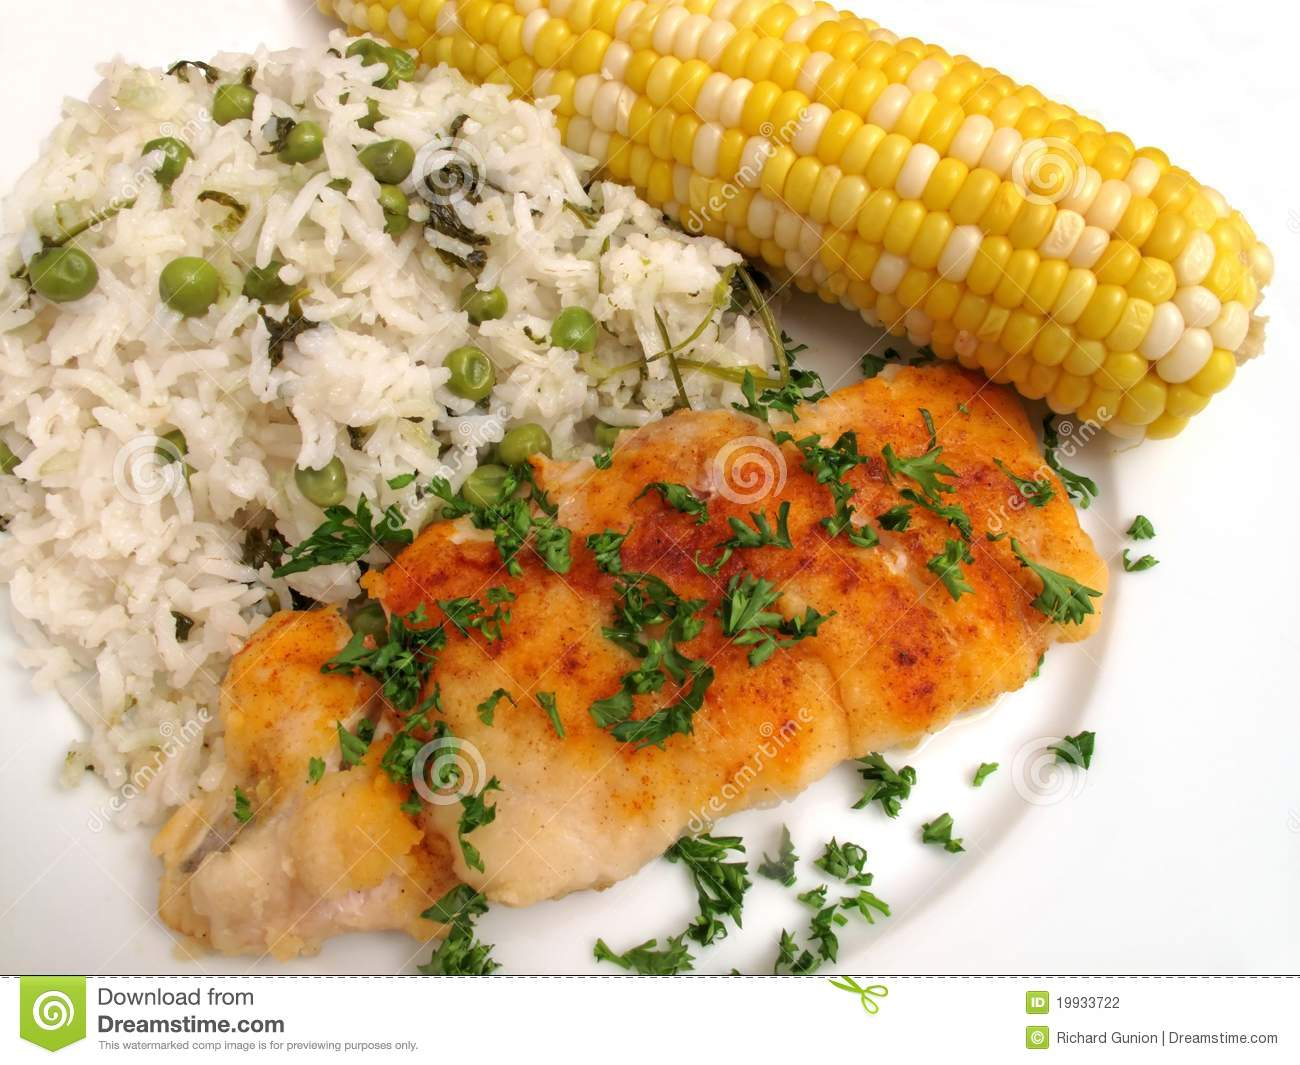 codfish fillet, ear of corn and rice served for dinner. Oven baked cod ...